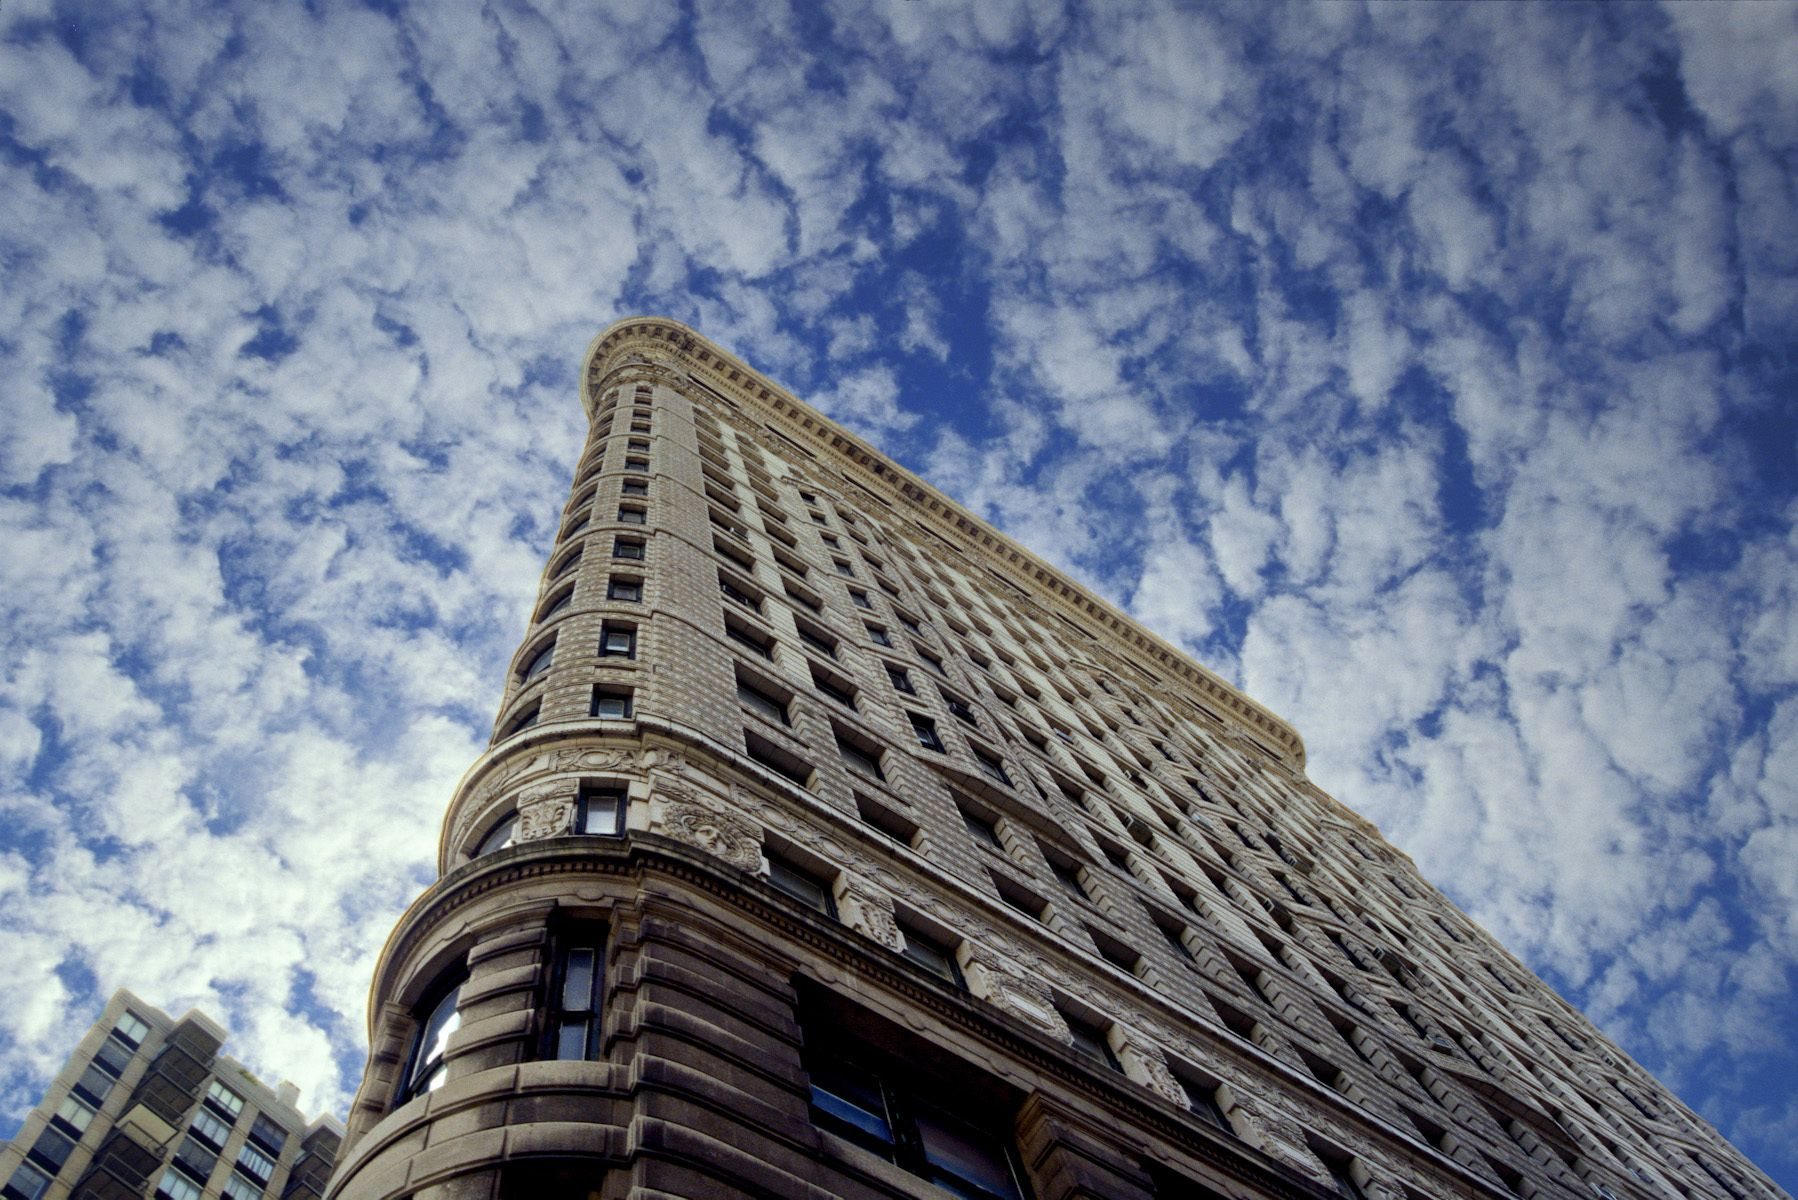 Flatiron Building - New York City